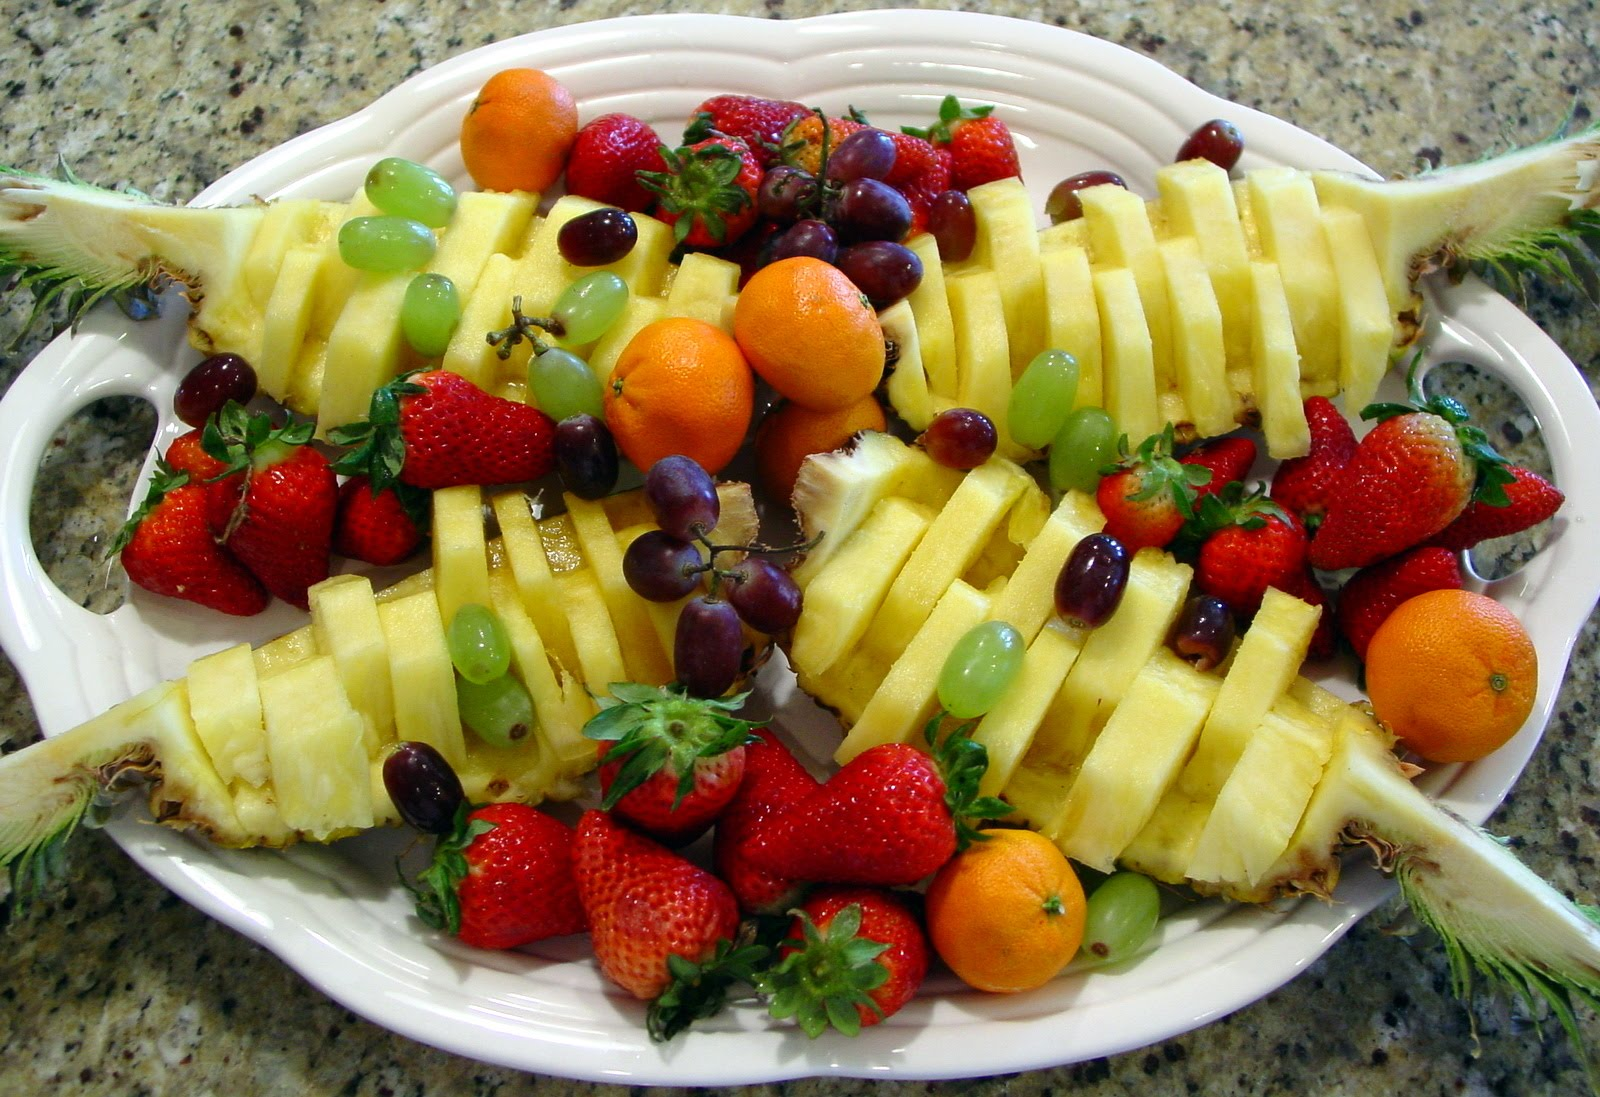 Baby shower idea a gathering place - How To Make A Fruit Platter Rachel Teodoro